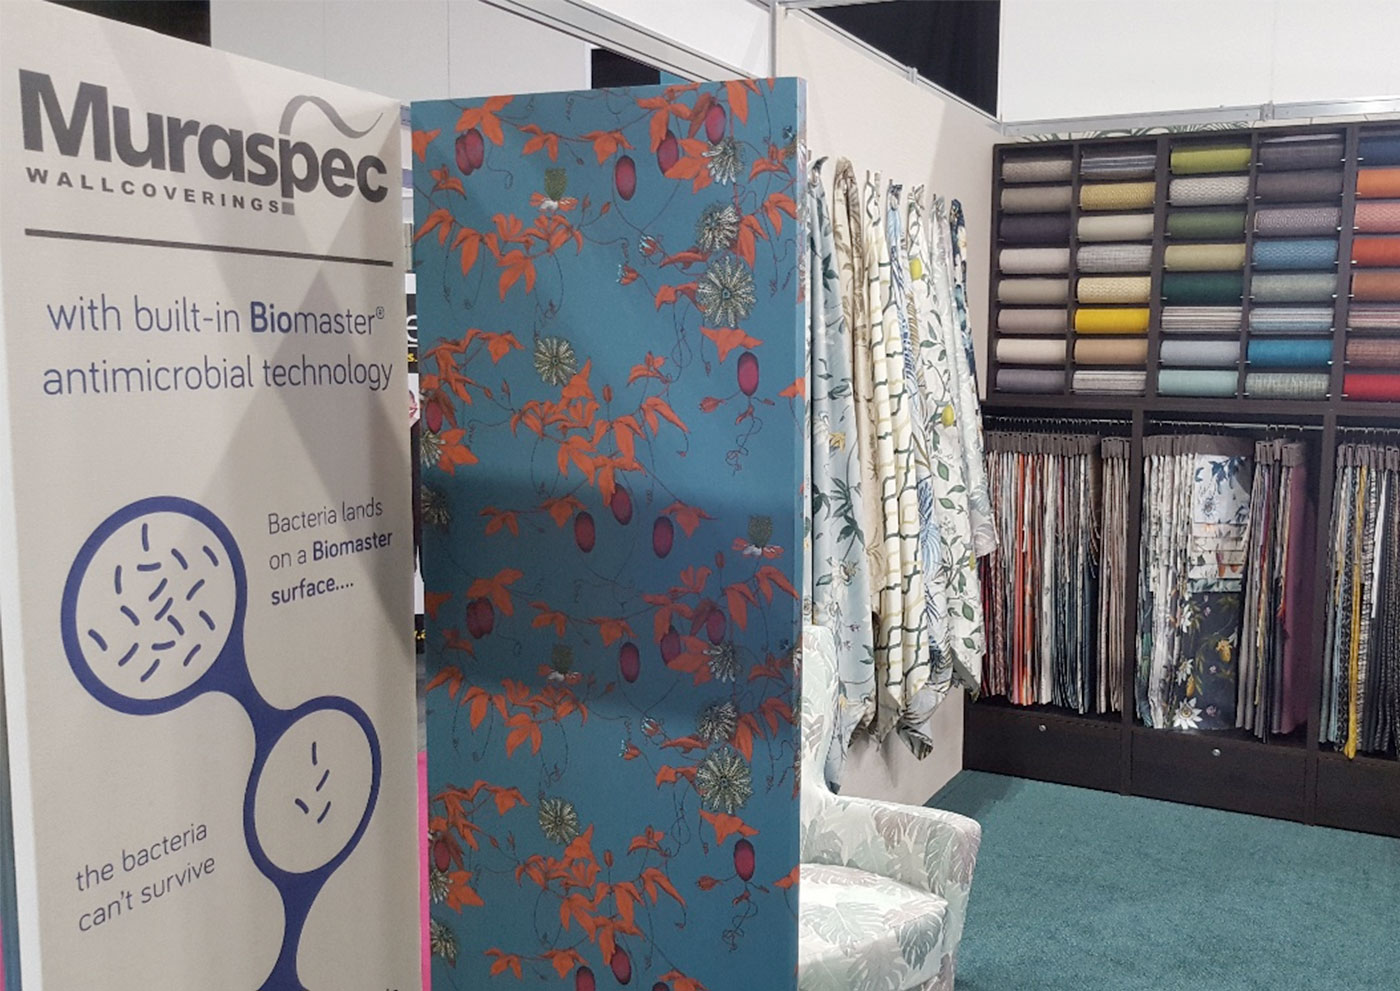 Muraspec, Global Wallcoverings Manufacturer, Launches Wallcovering Collection for Infection Control